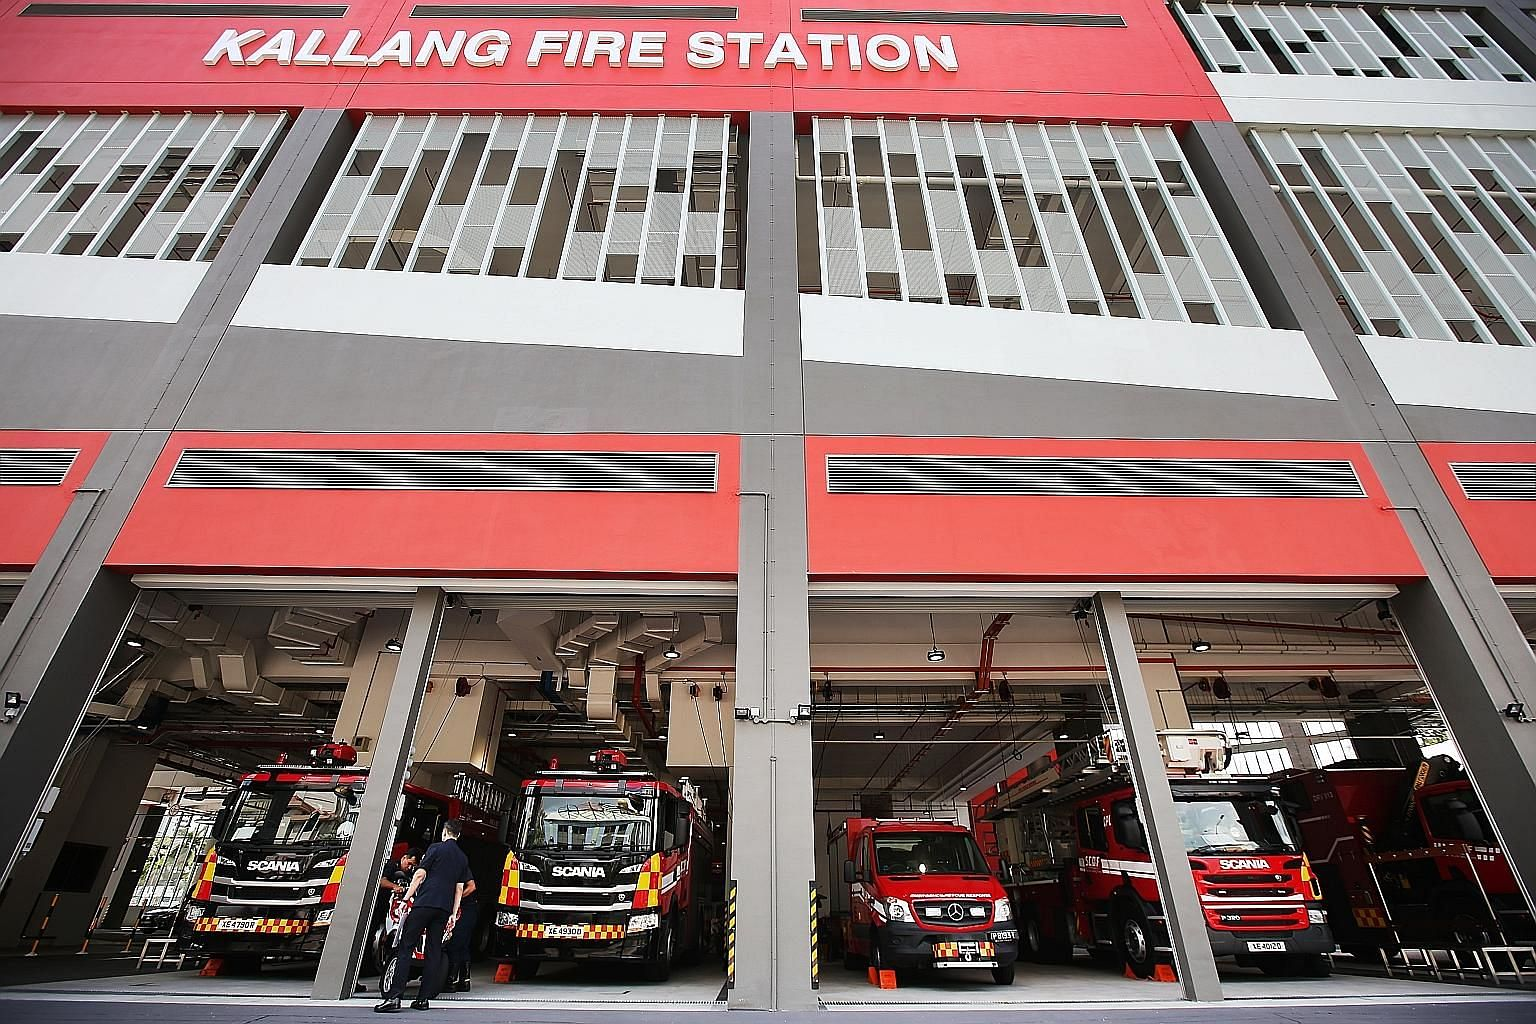 Mr Shanmugam visiting the Home Team Joint Facility in Kallang Fire Station. It includes a main command room where personnel from the police, Singapore Civil Defence Force and other agencies will work together. Home Affairs and Law Minister K. Shanmug